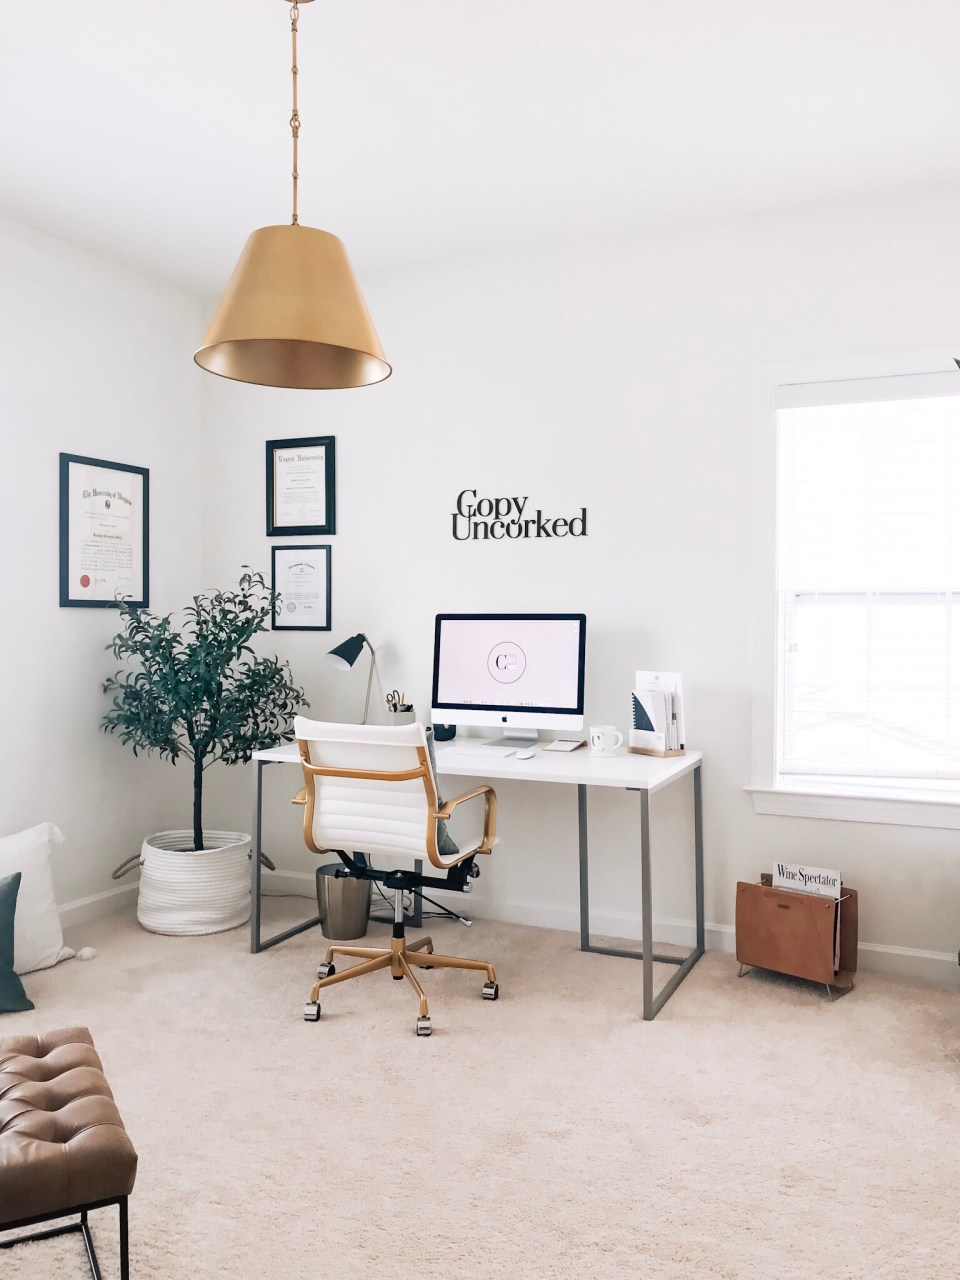 Copy Uncorked Office Style - The Monthly Recap: May 2019 - copyuncorked.com